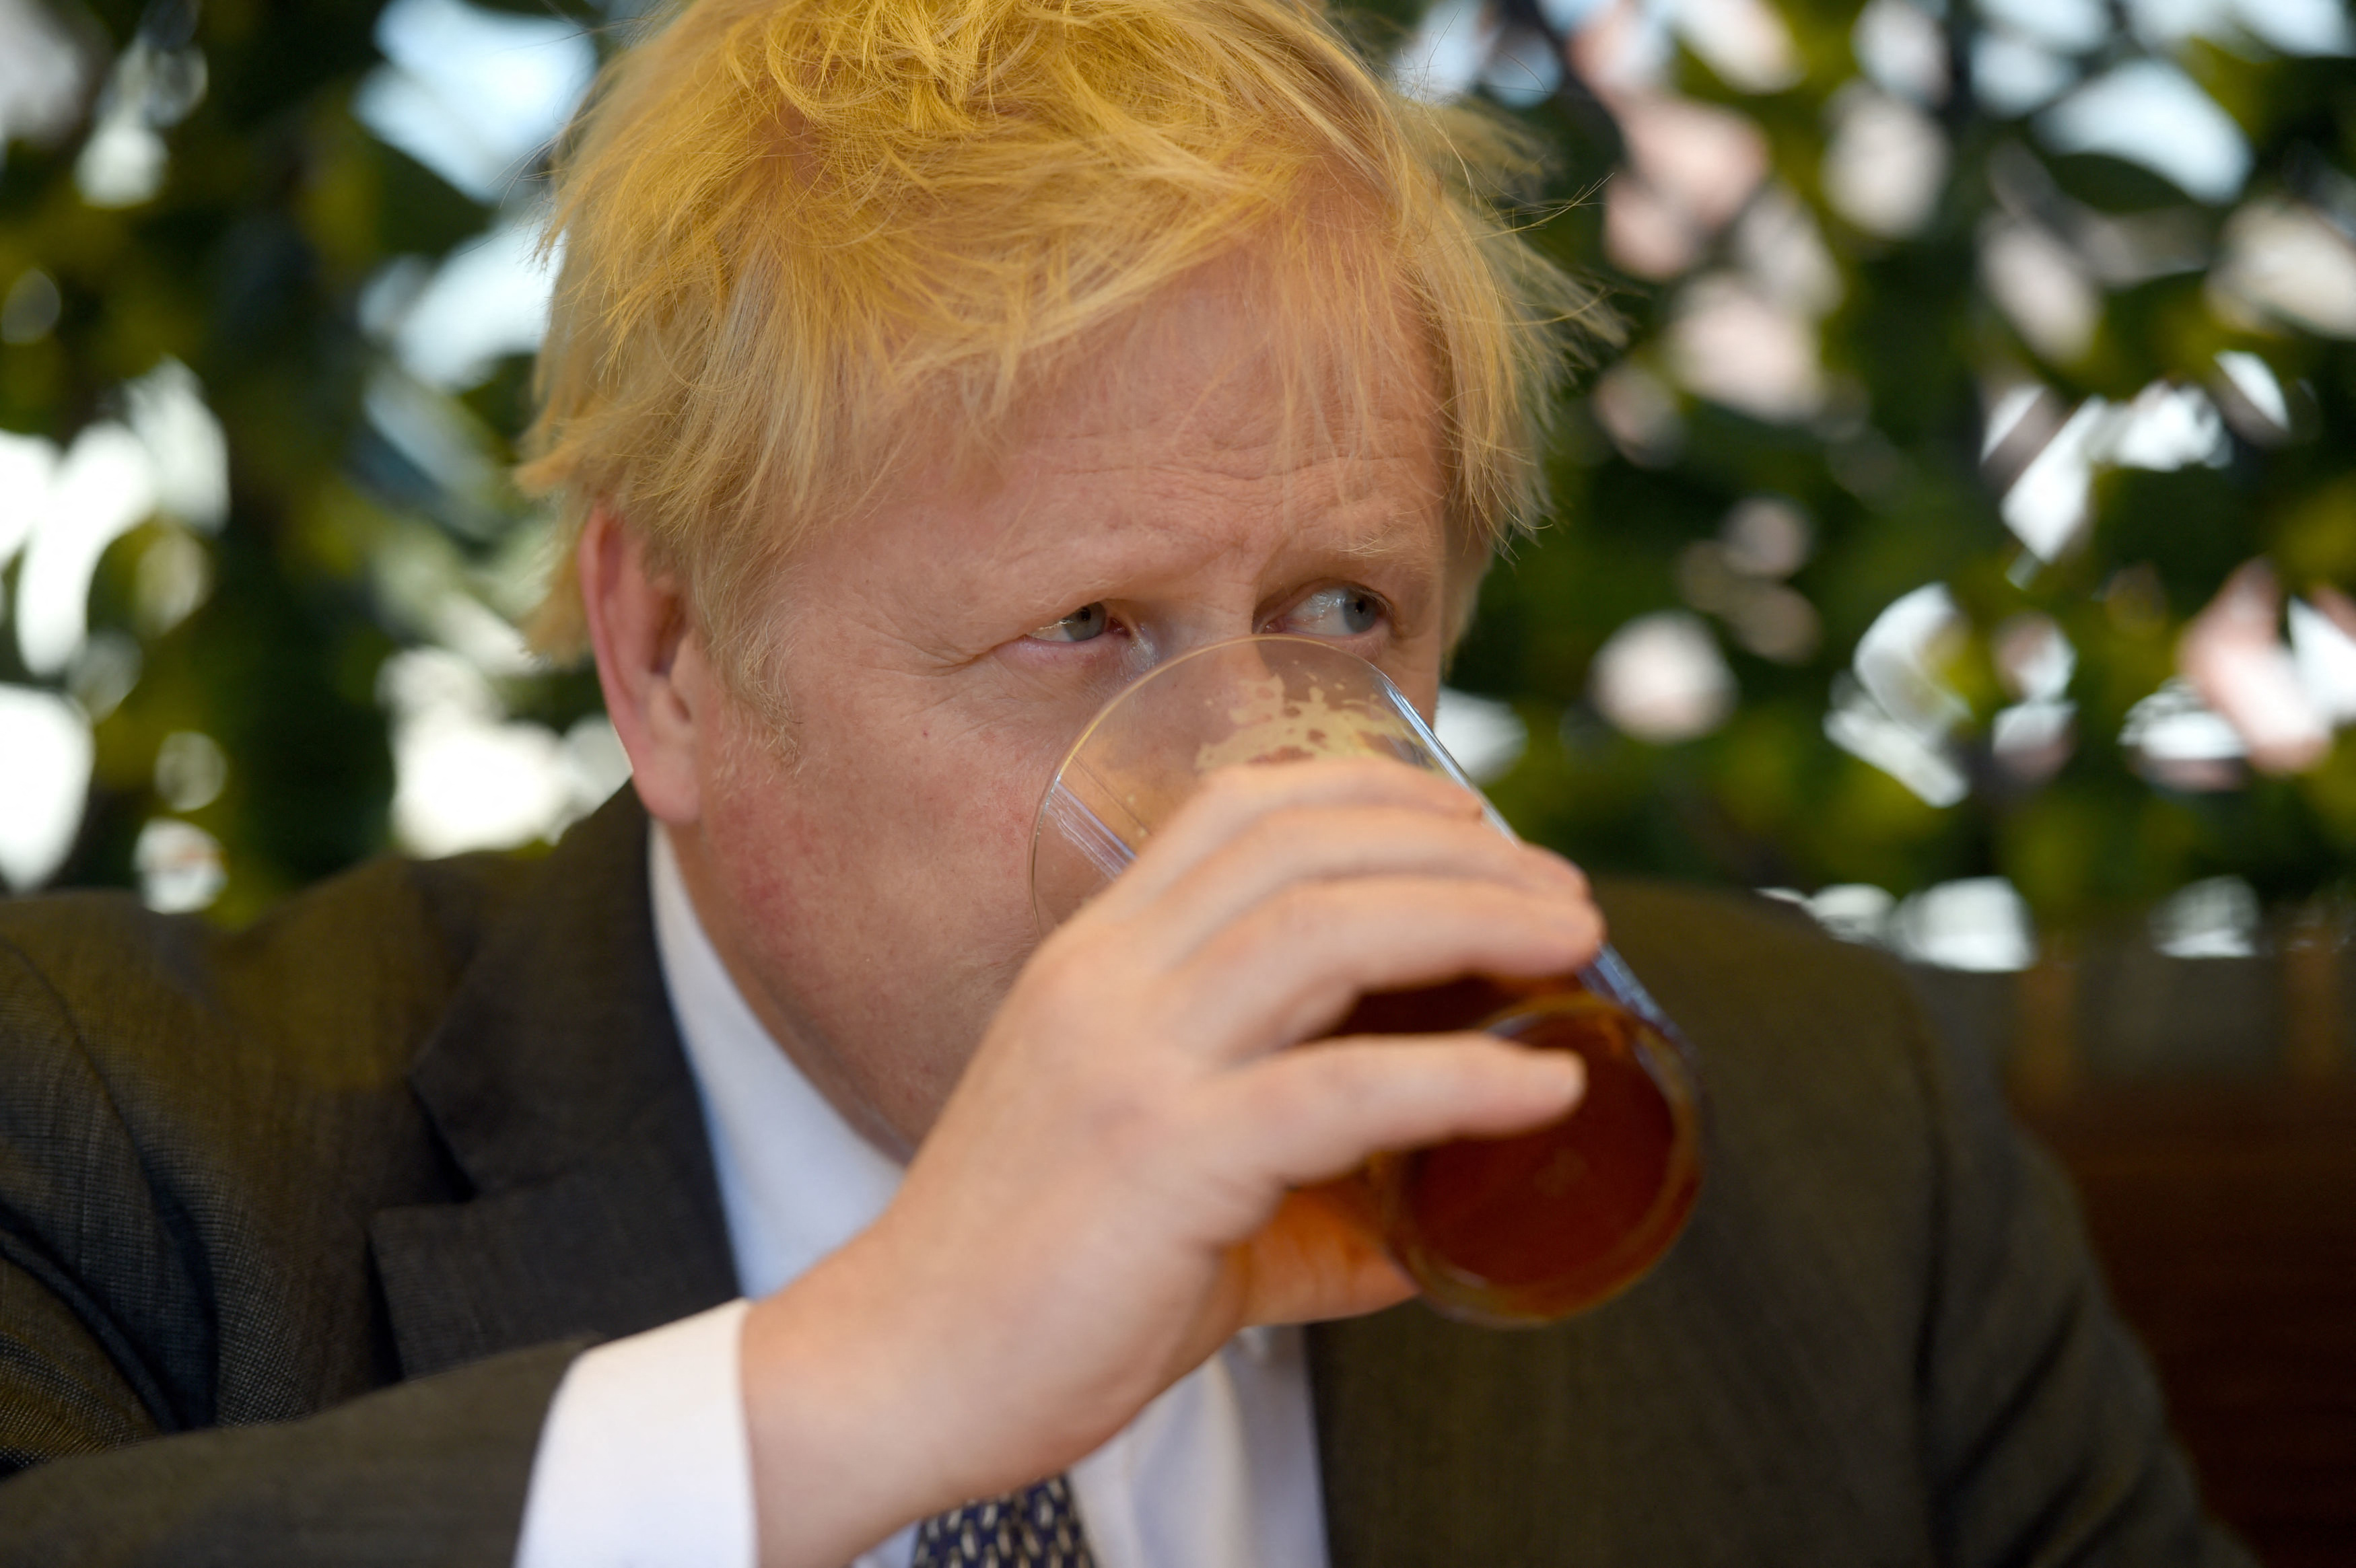 Boris Johnson sits drinking a pint of beer while wearing a suit